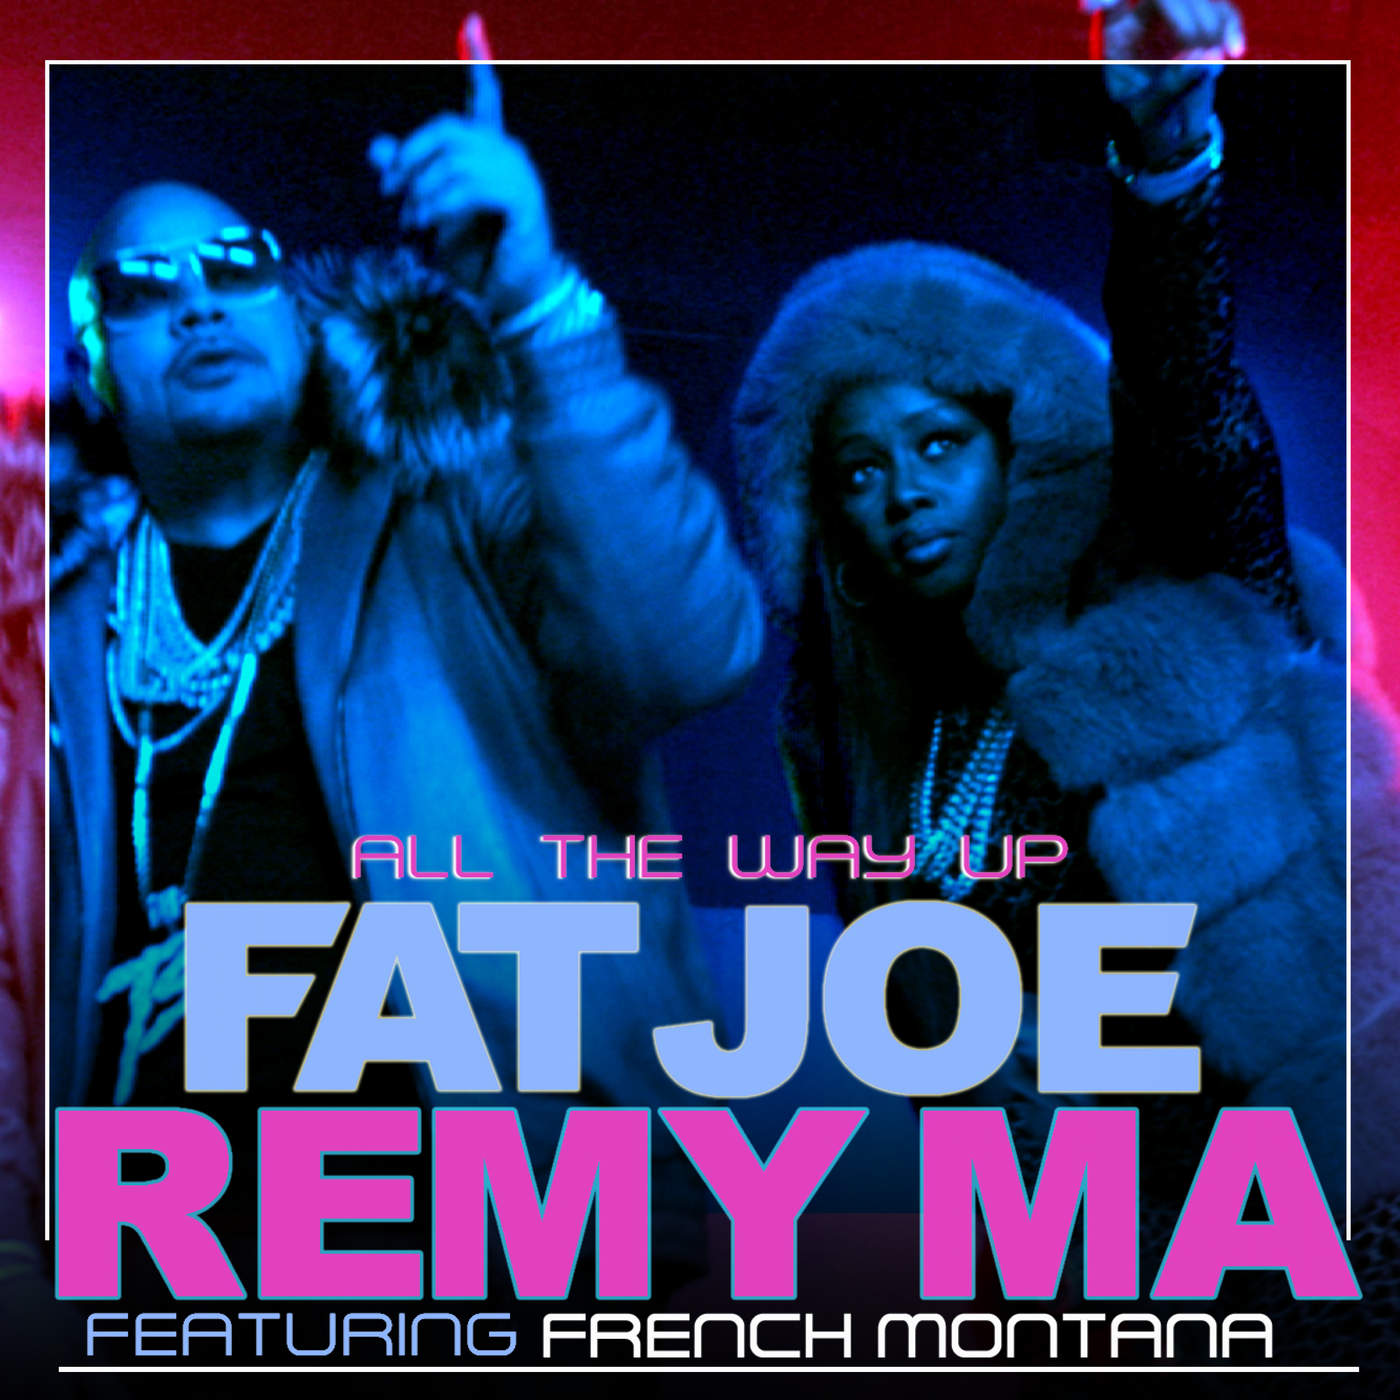 Fat Joe & Remy Ma - All the Way Up (feat. French Montana) - Single Cover